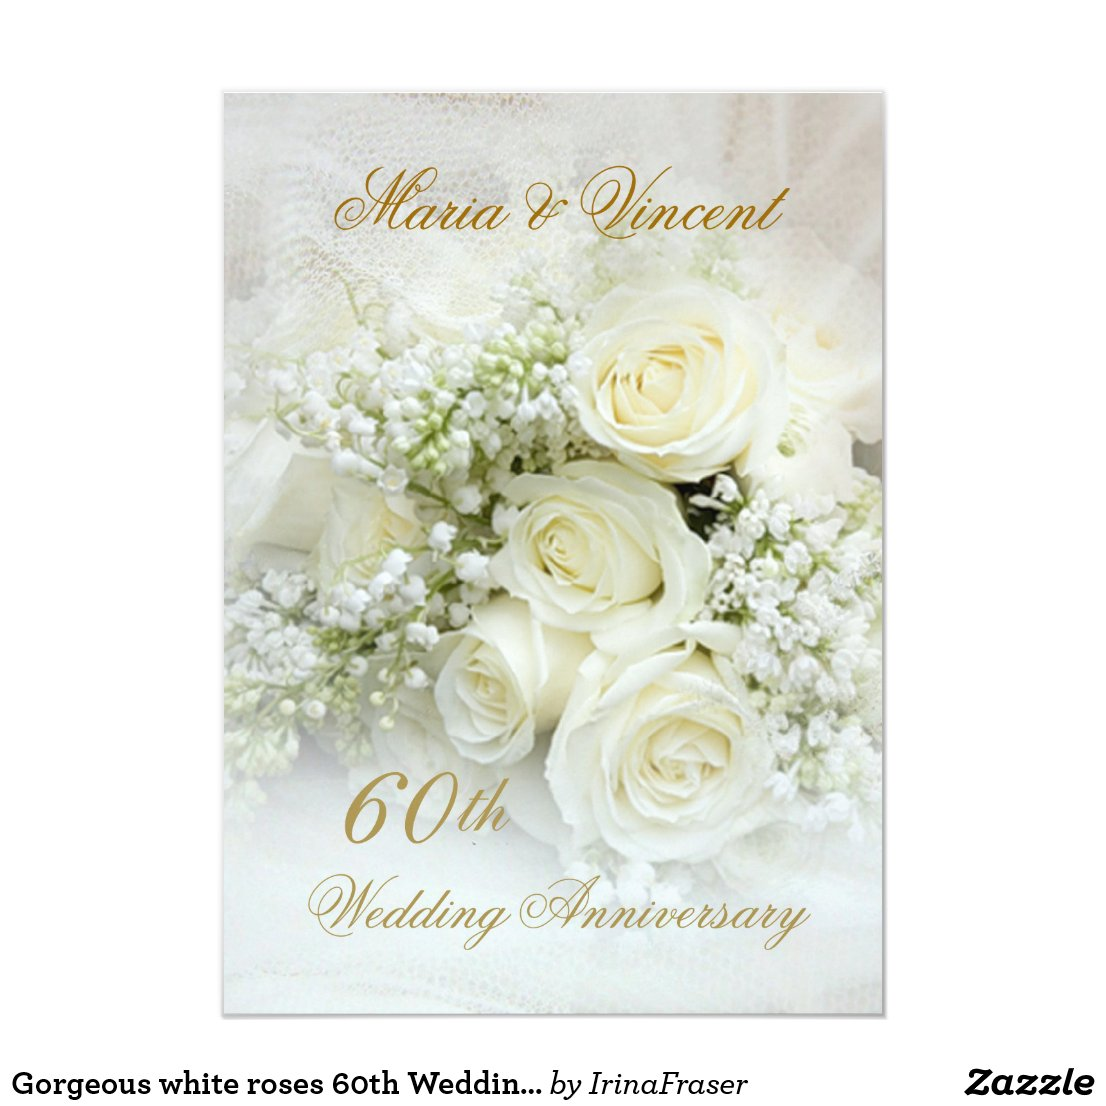 Gorgeous white roses 60th Wedding Anniversary Card